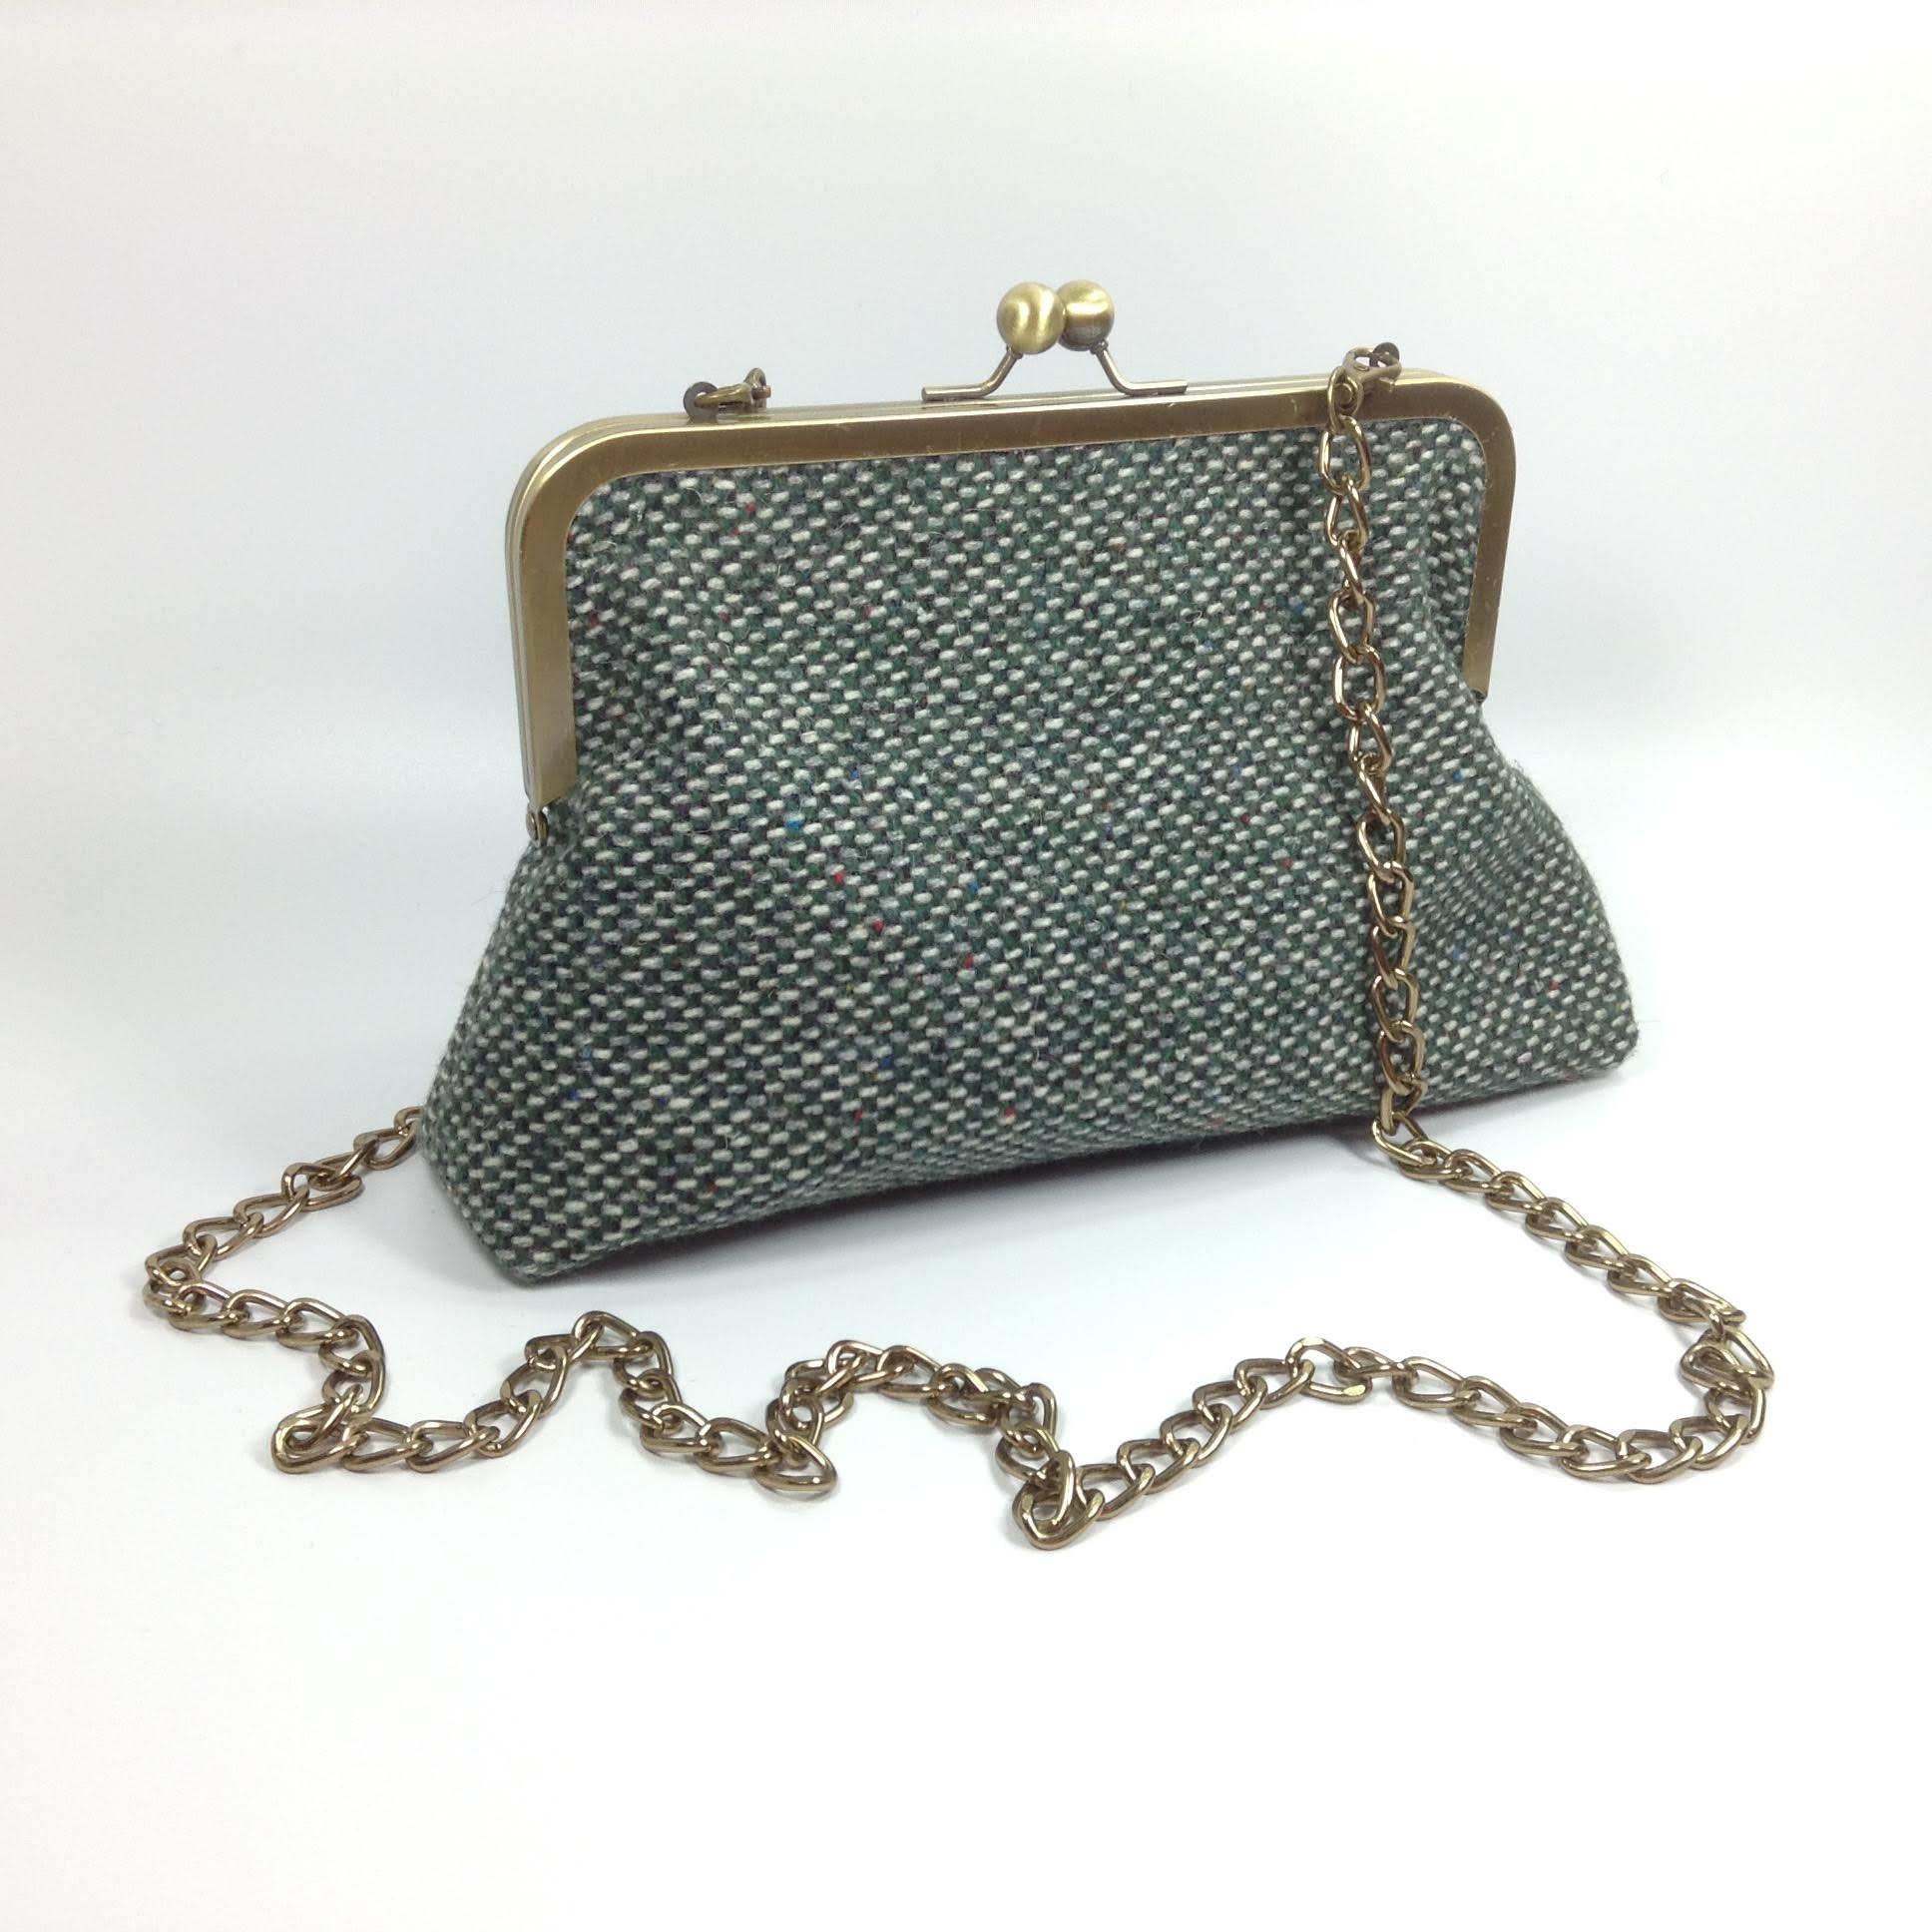 Green tweed wool shoulder or clutch bag